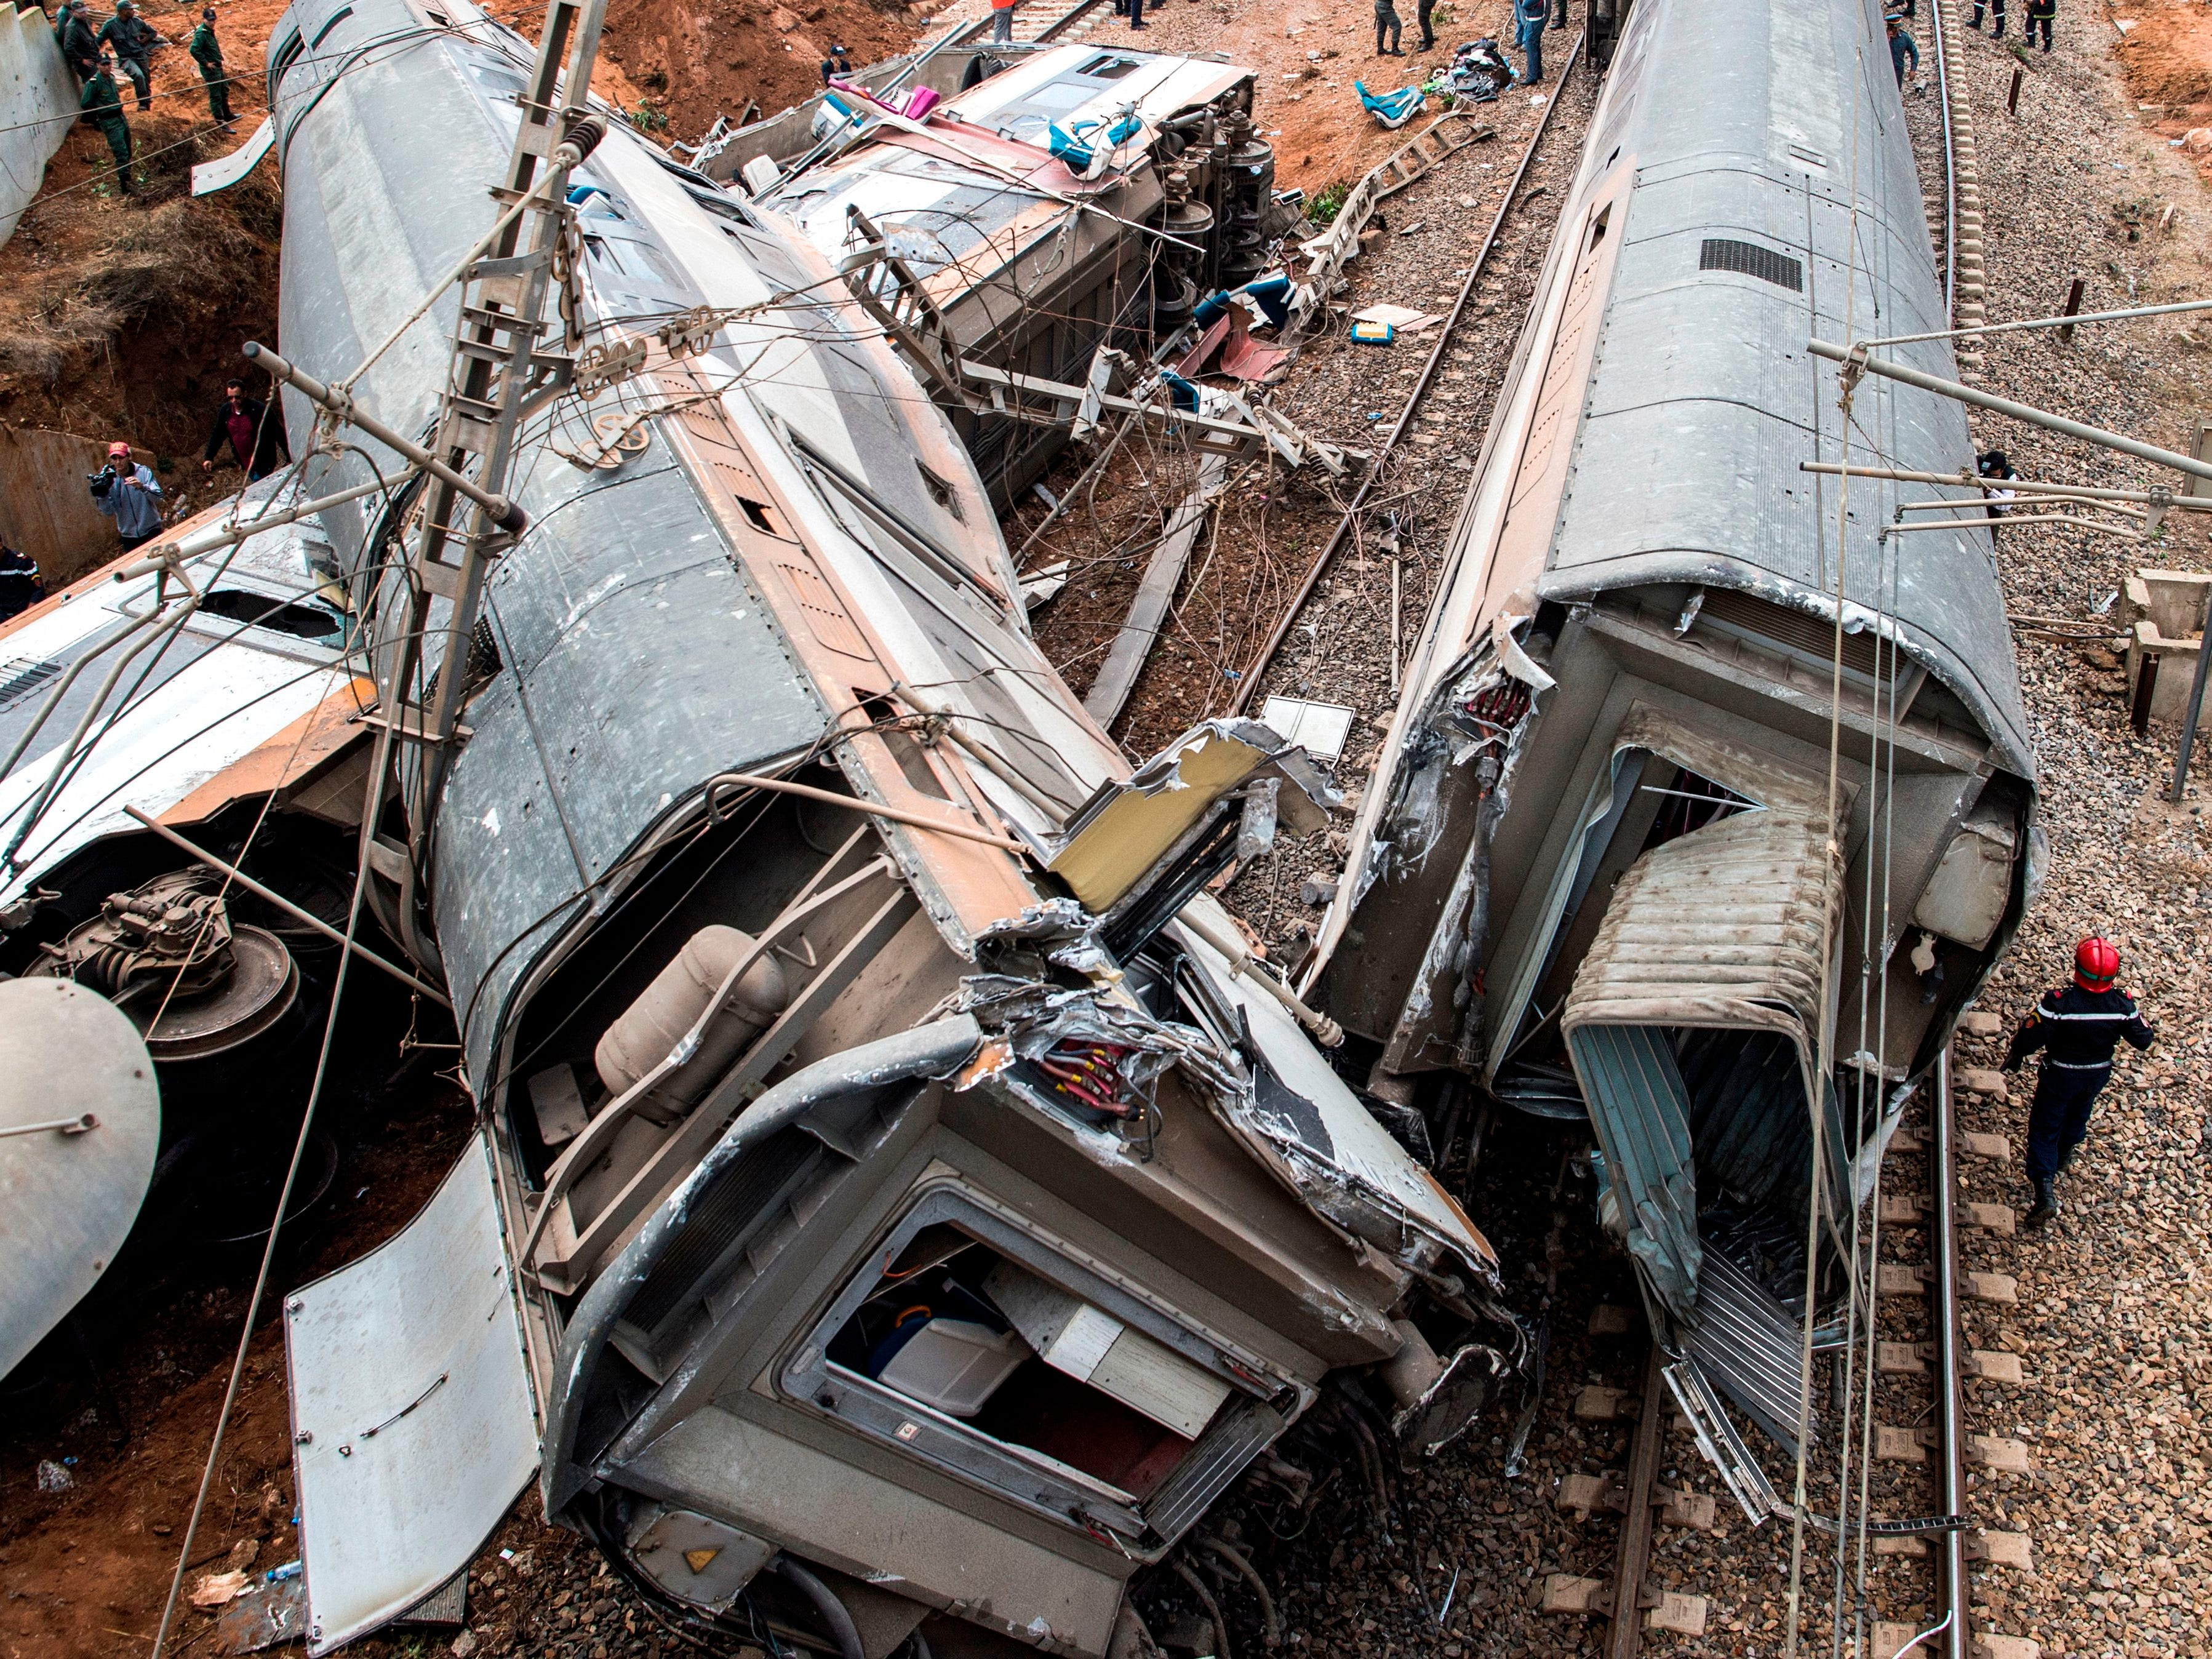 This picture taken October 16, 2018, shows a train wreck in the Moroccan town of Bouknadel. The detrailment resulted in at least six deaths including the driver and more than 70 injuries.